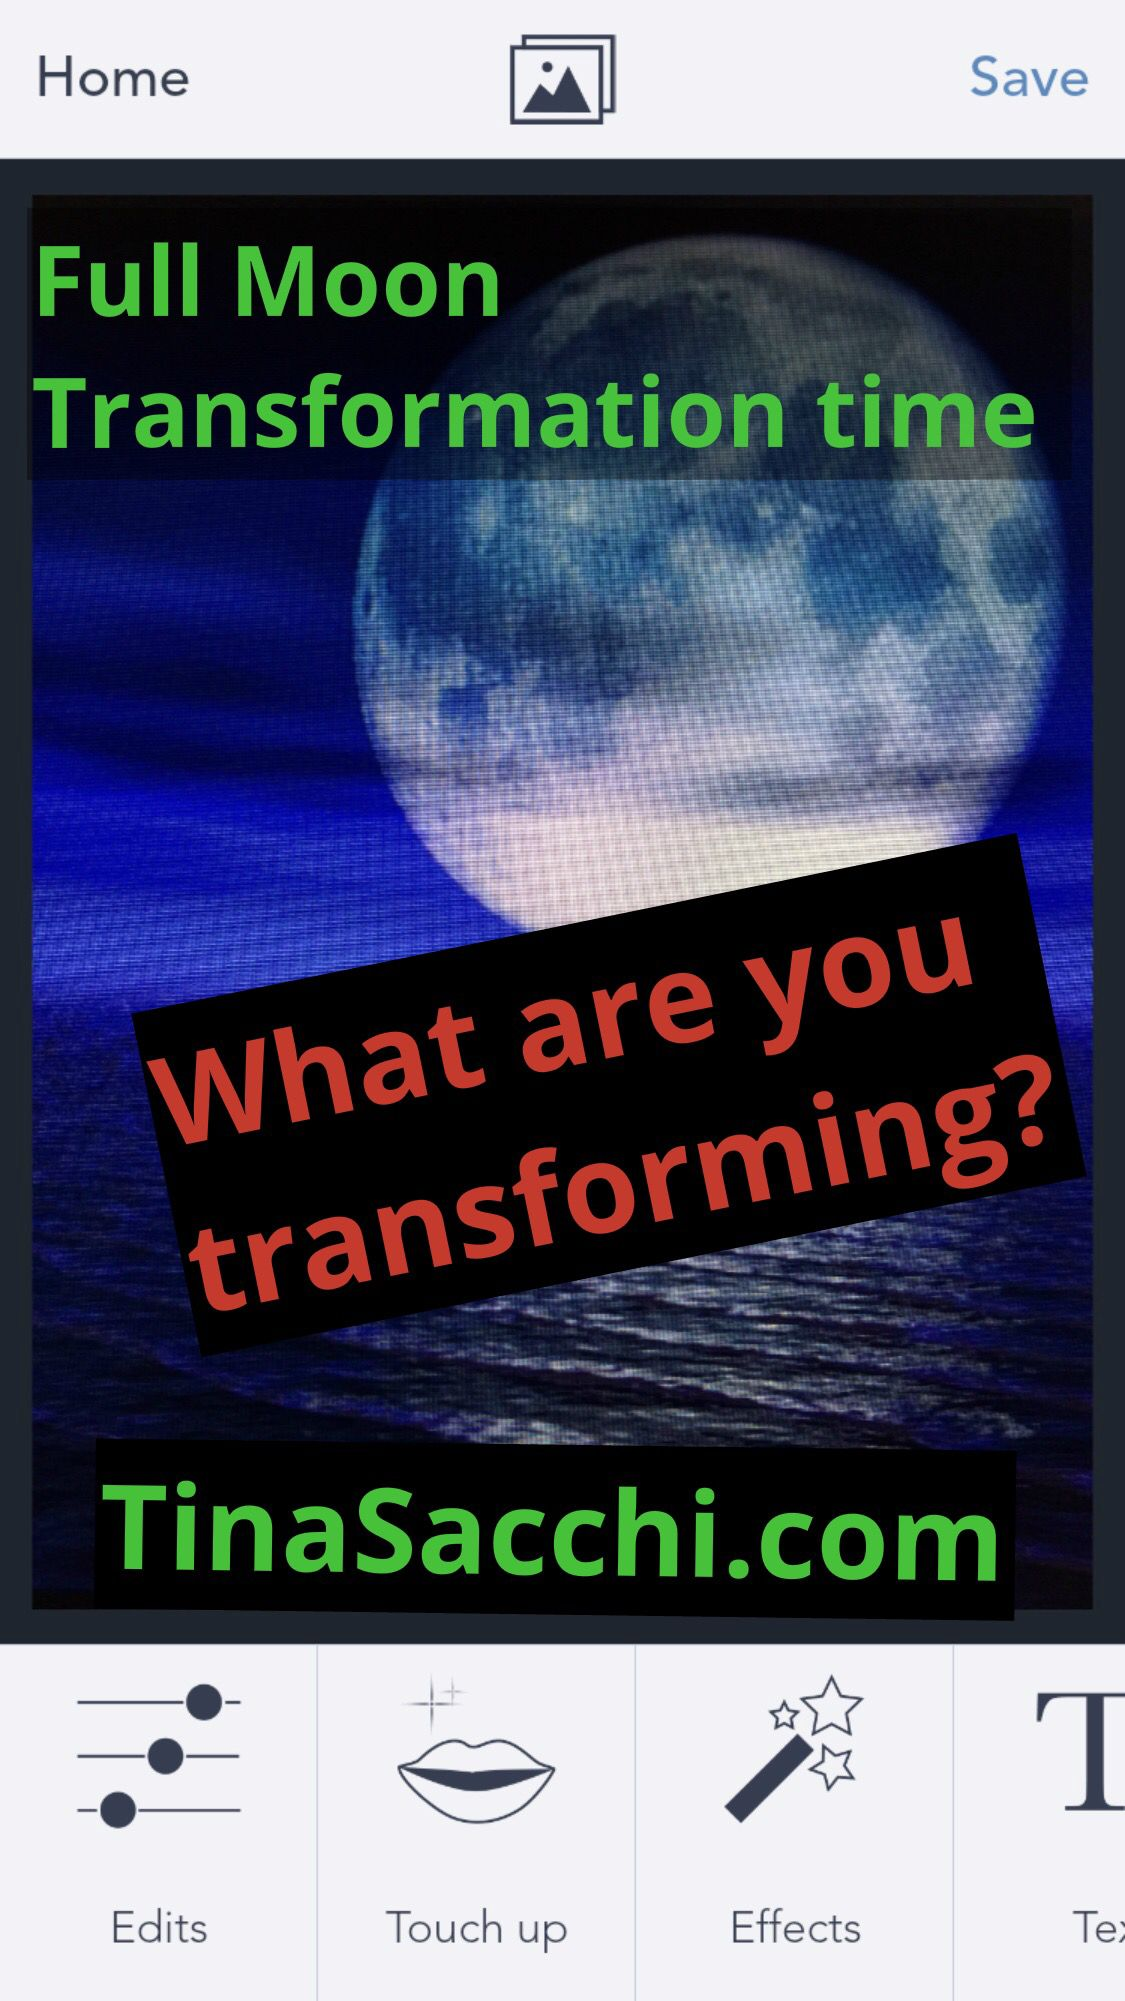 Full moon Transformation time  What are transforming?